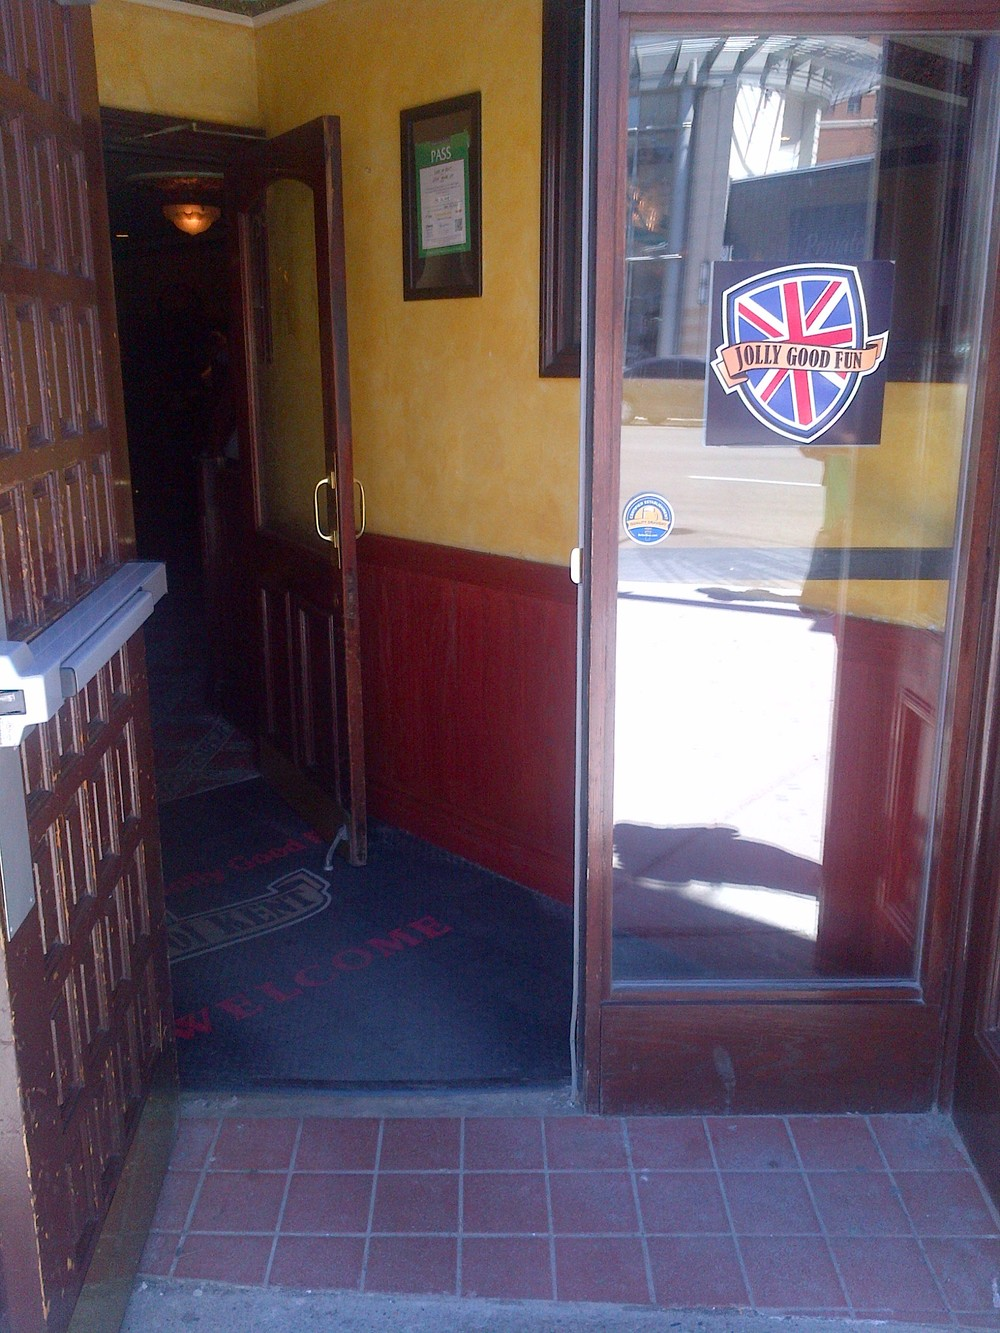 Picture of accessible doorway.